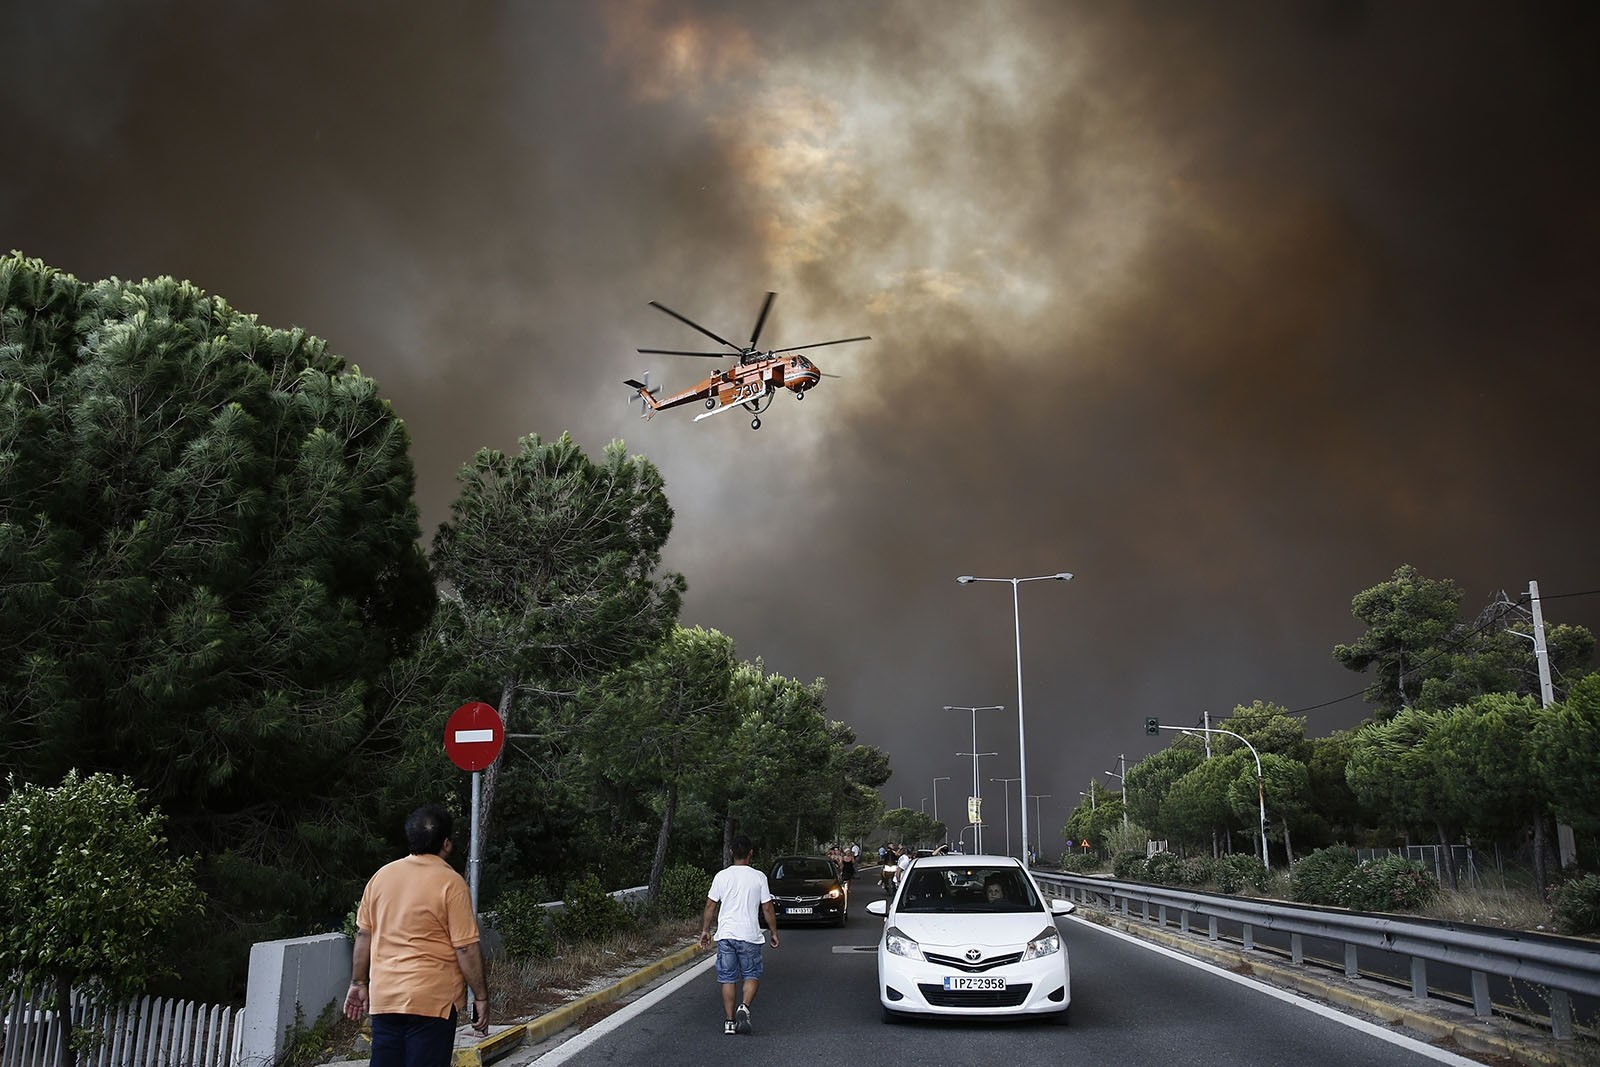 A firefighting helicopter flies over an avenue during a forest fire in Neo Voutsa, a northeast suburb of Athens, Greece, July 23, 2018.